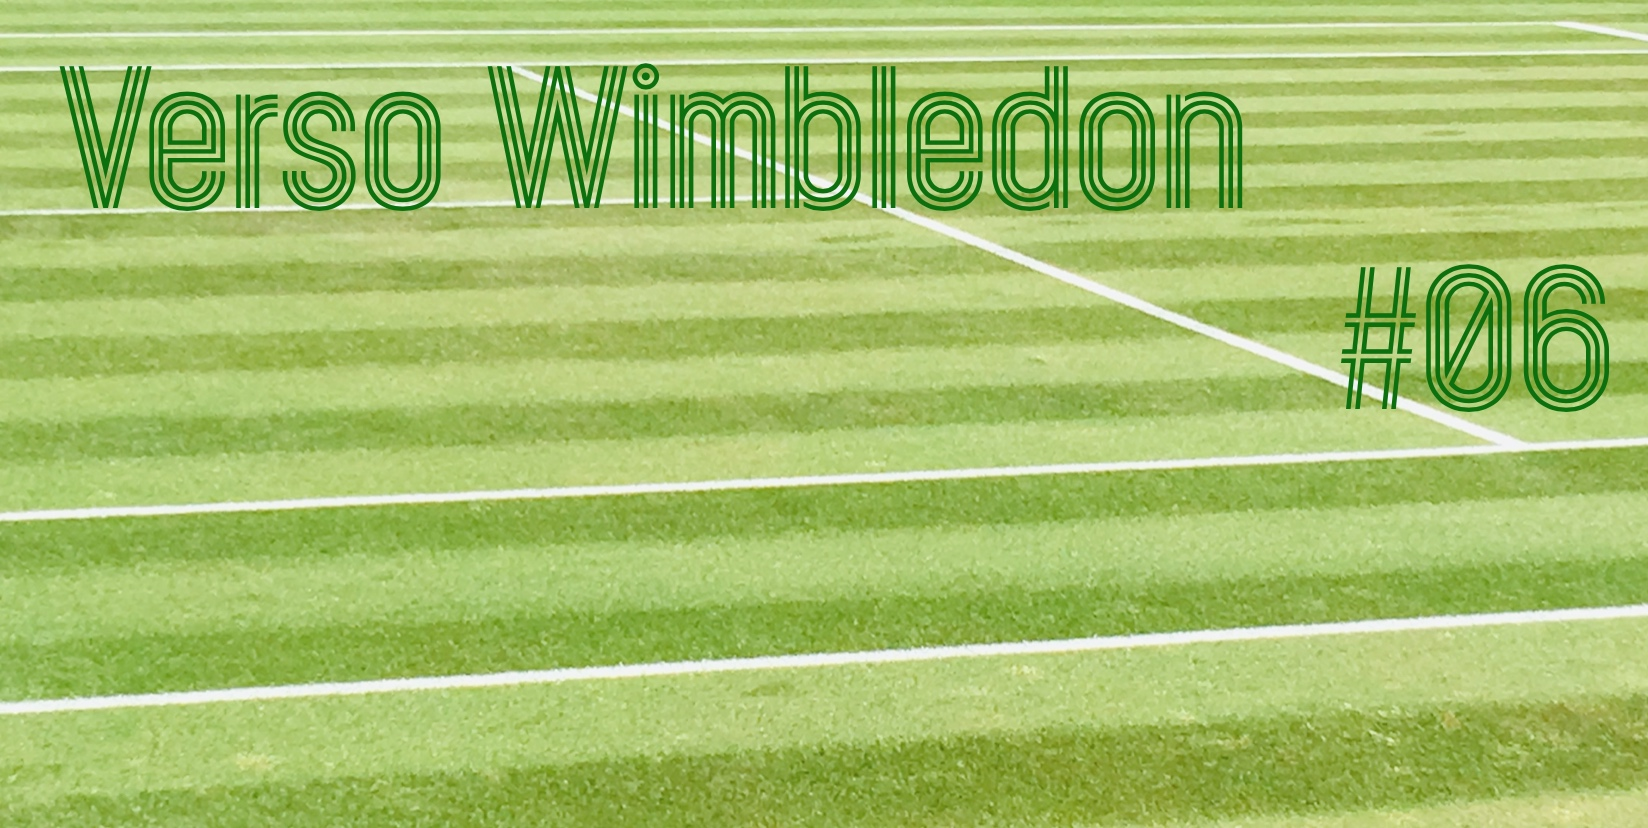 Verso Wimbledon #6 - settesei.it